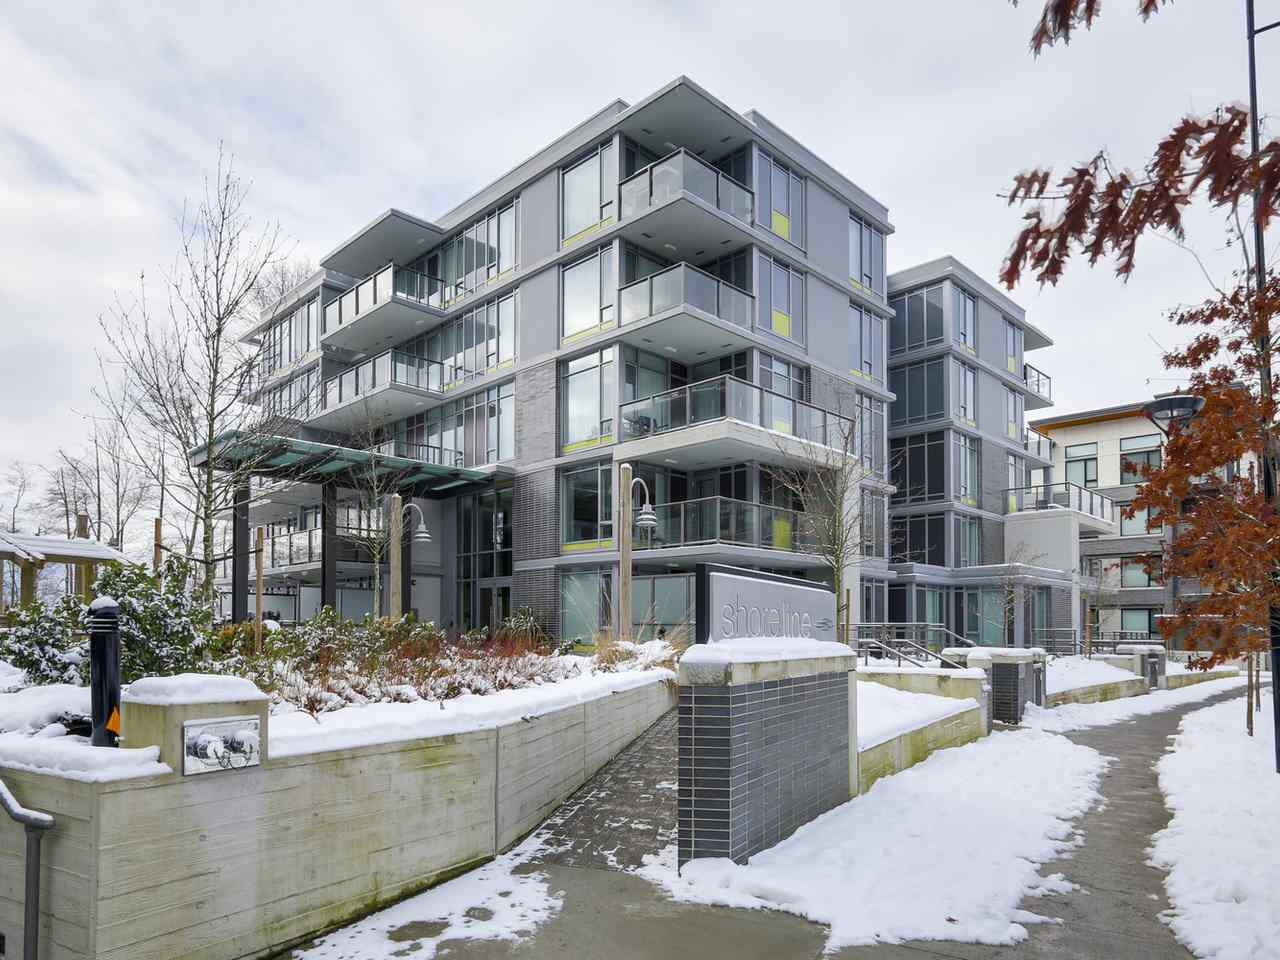 Main Photo: 203 3162 RIVERWALK AVENUE in Vancouver: Champlain Heights Condo for sale (Vancouver East)  : MLS®# R2137881